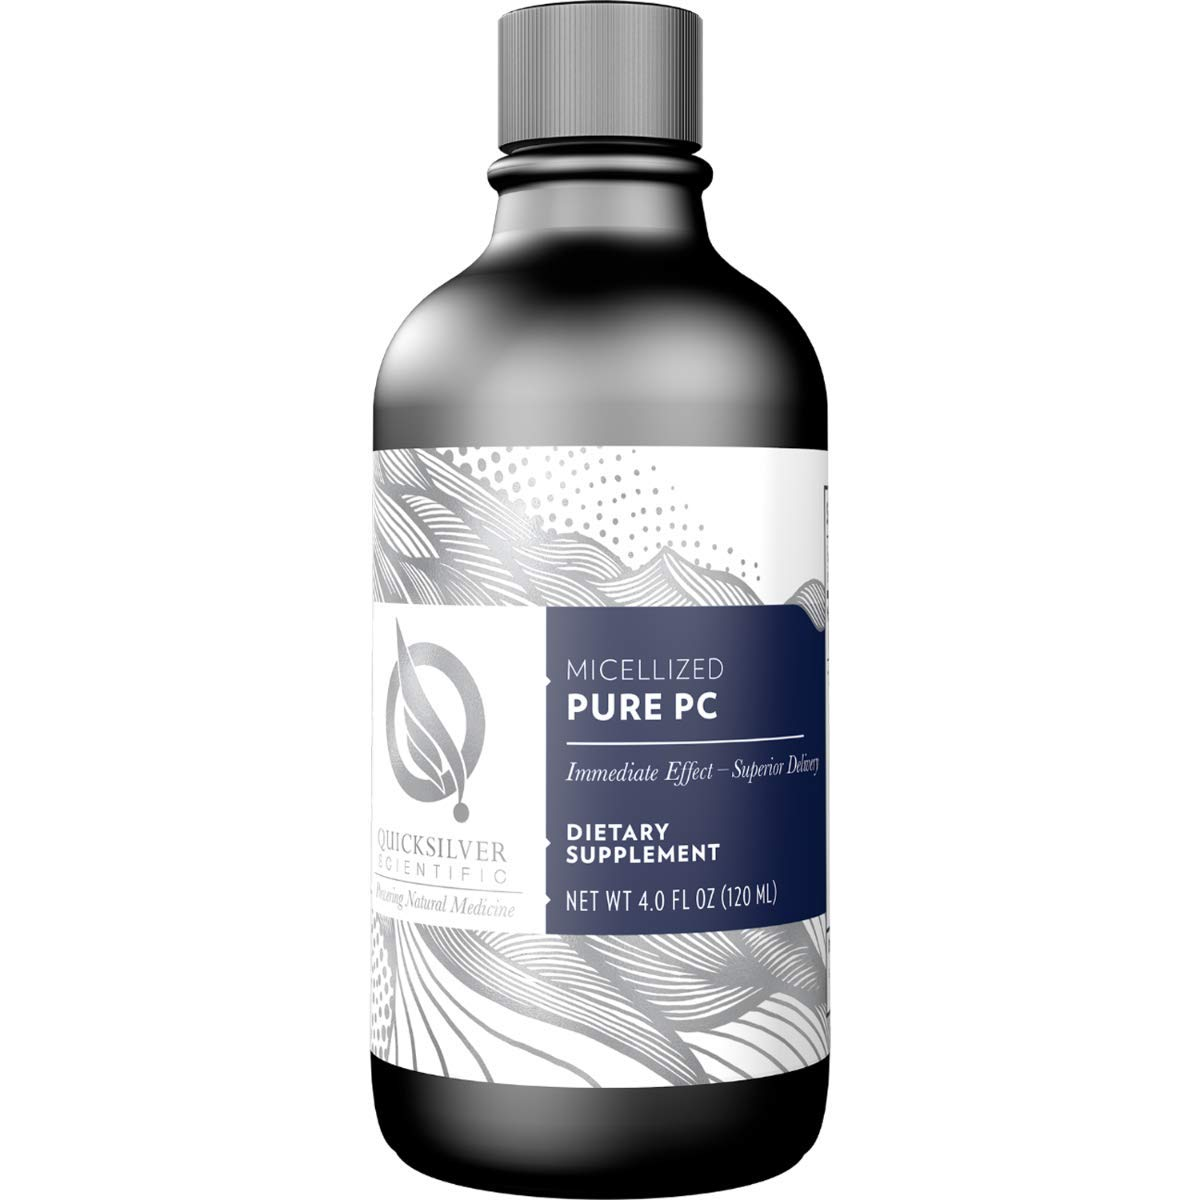 Quicksilver Scientific Micellized Pure PC - Phosphatidylcholine Liquid Supplement to Support Cell Replenishment, Cognitive Function & Liver Detoxification, Gluten-Free (4oz / 120ml)